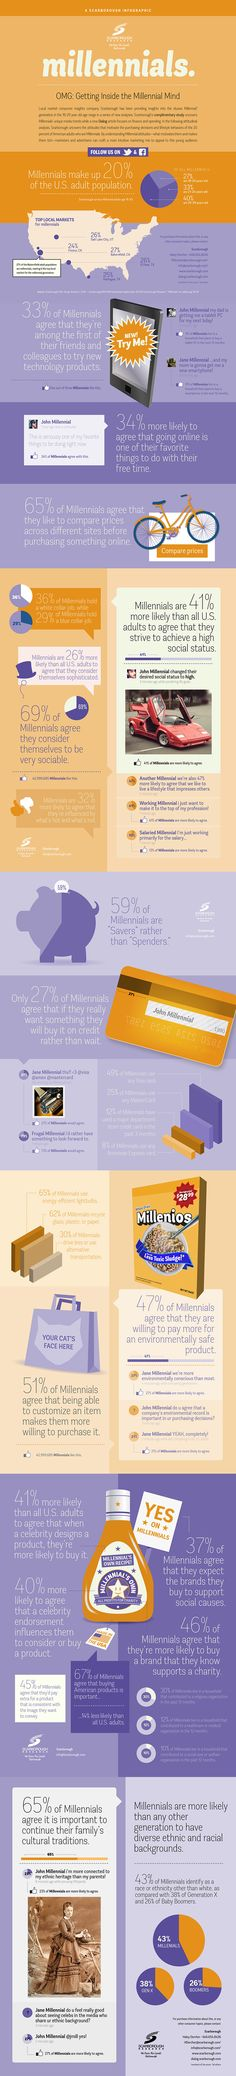 65% of Millennials like to price shop before settling down on a purchase.